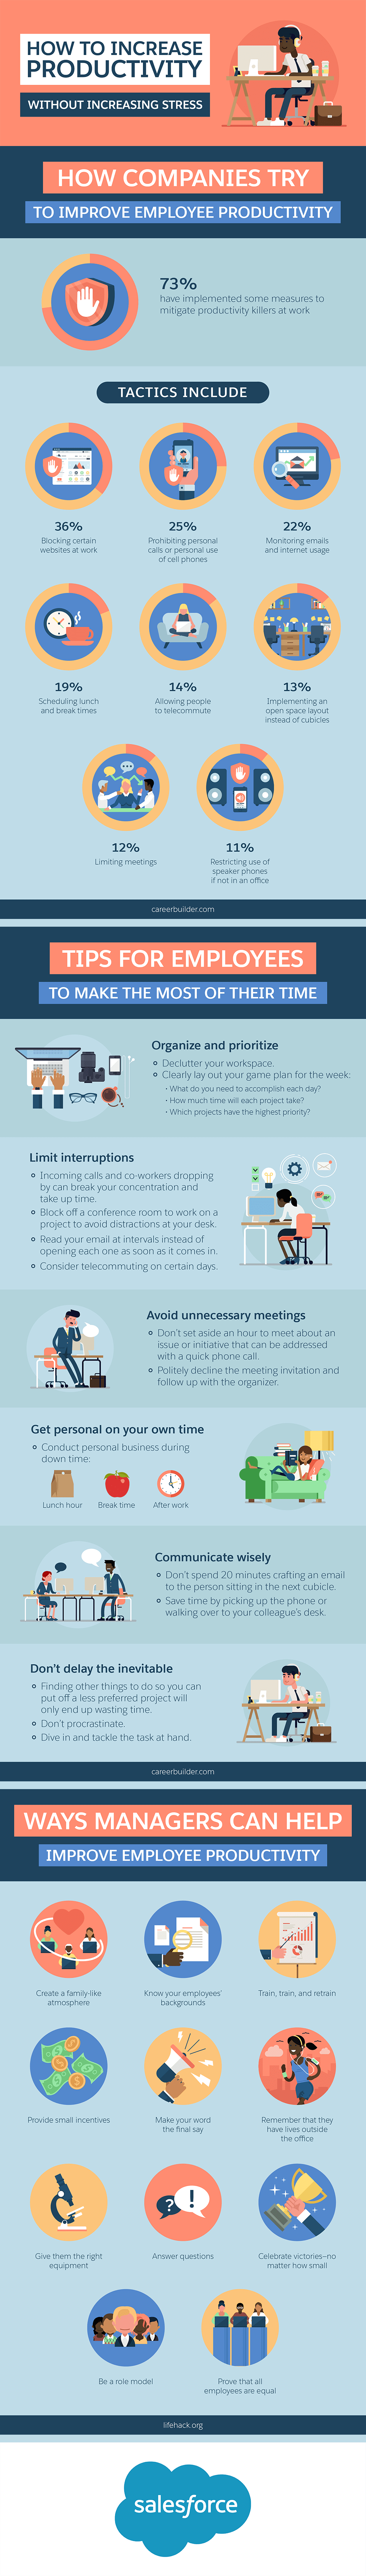 10 steps how to use stress to increase your productivity motivate - How To Increase Productivity Without Increasing Stress Infographic